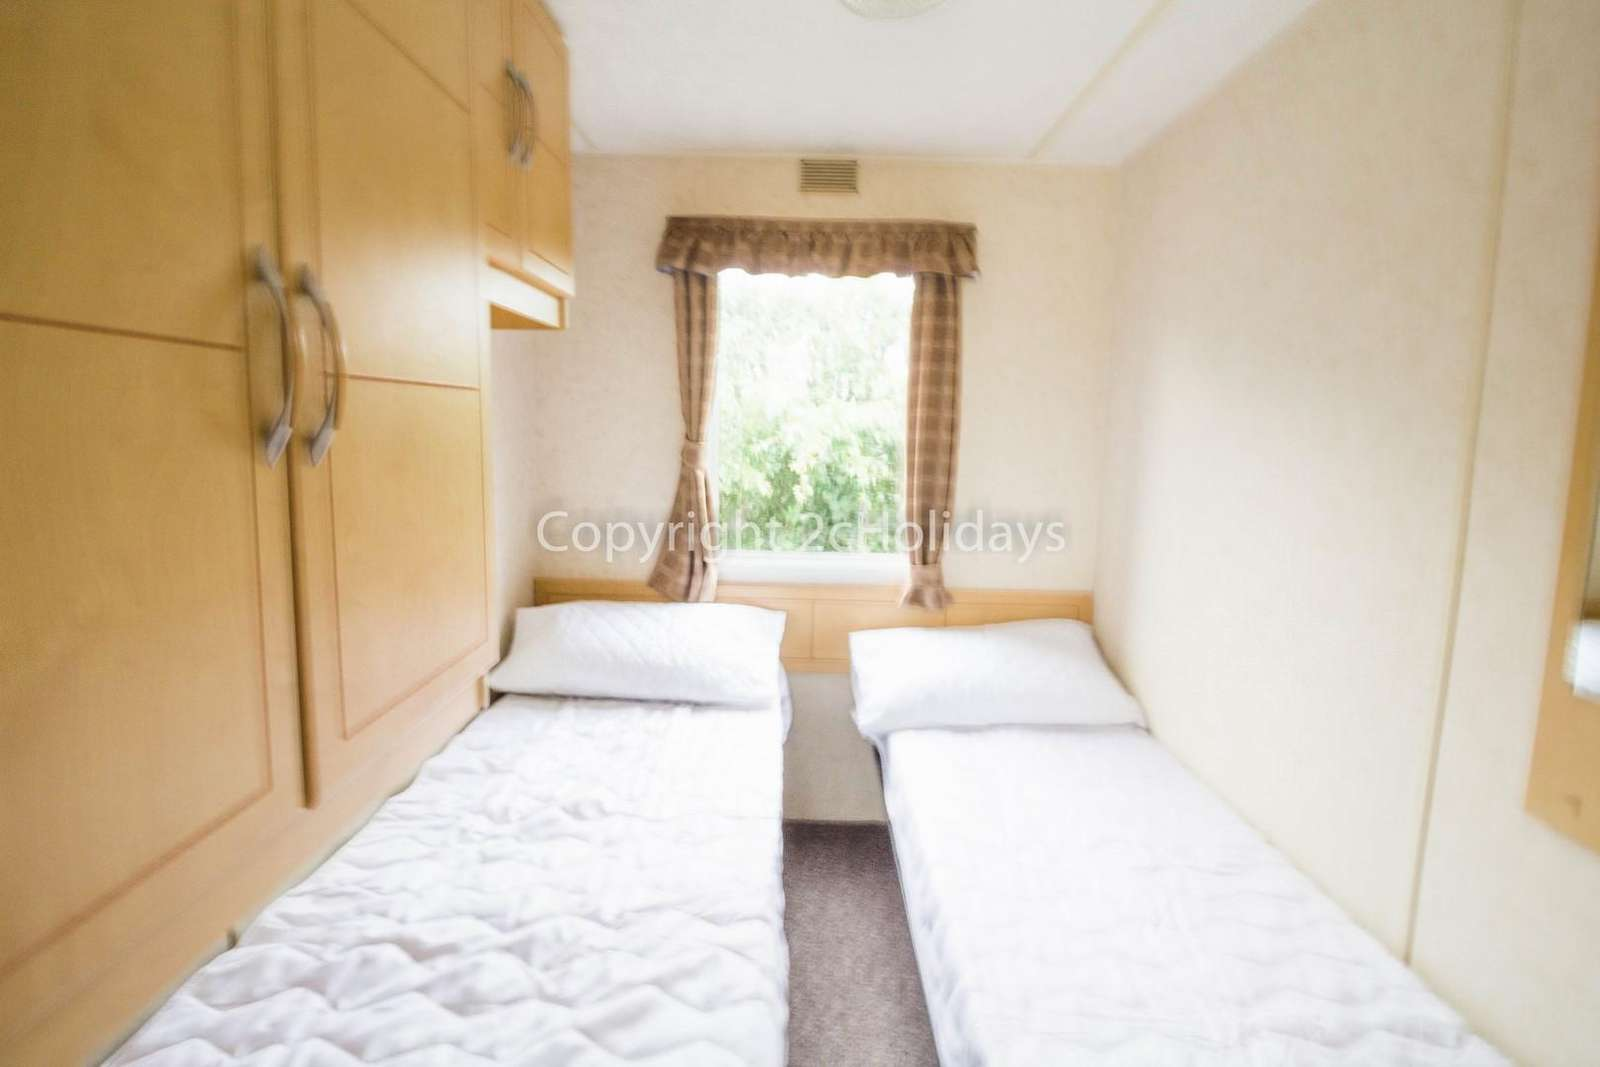 Come and stay in this private accommodation at California Cliffs Holiday Park